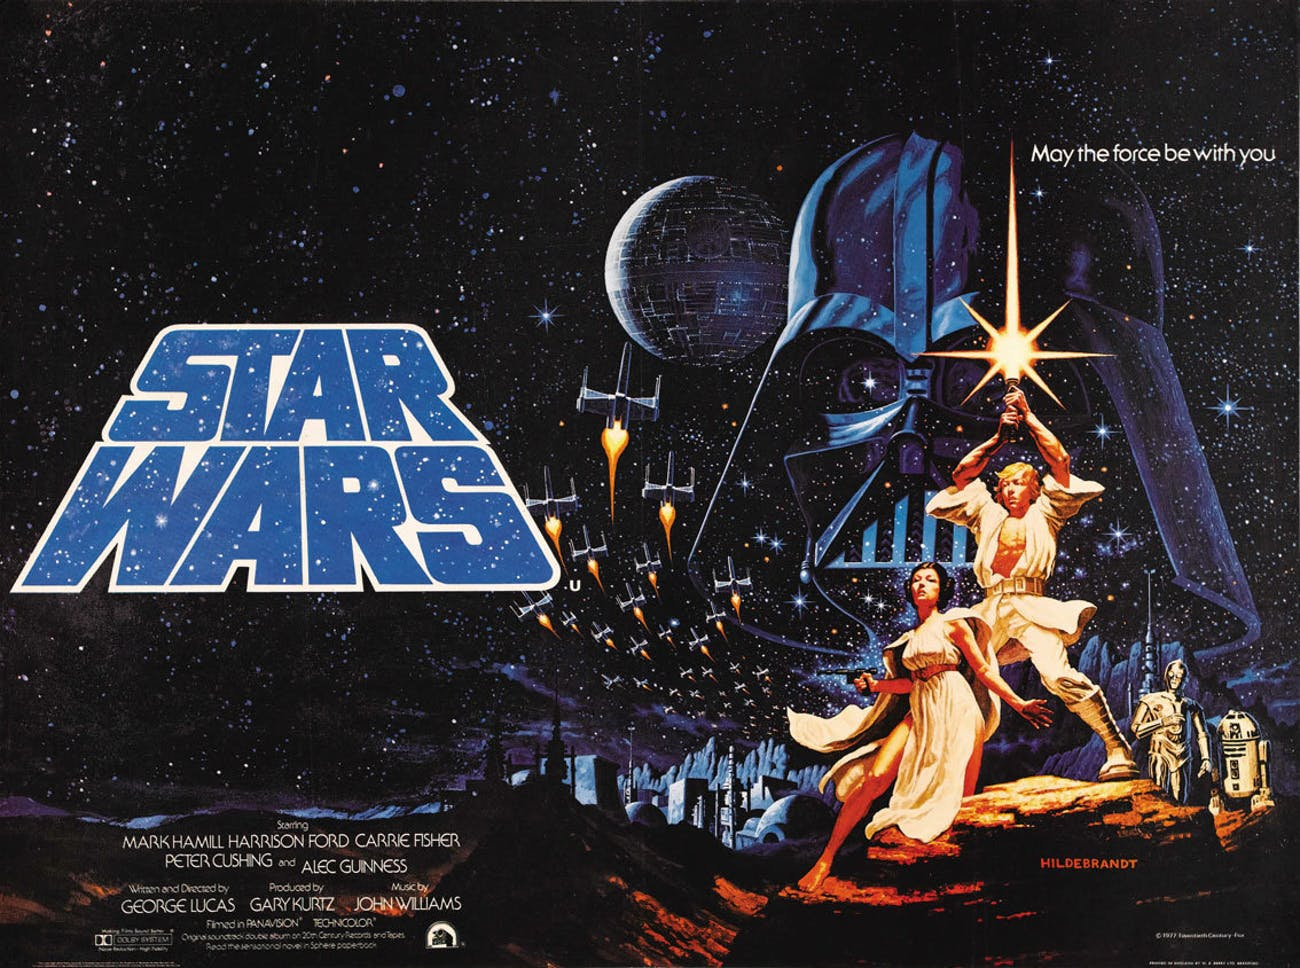 Why Finding The Original 1977 Star Wars Verges On The